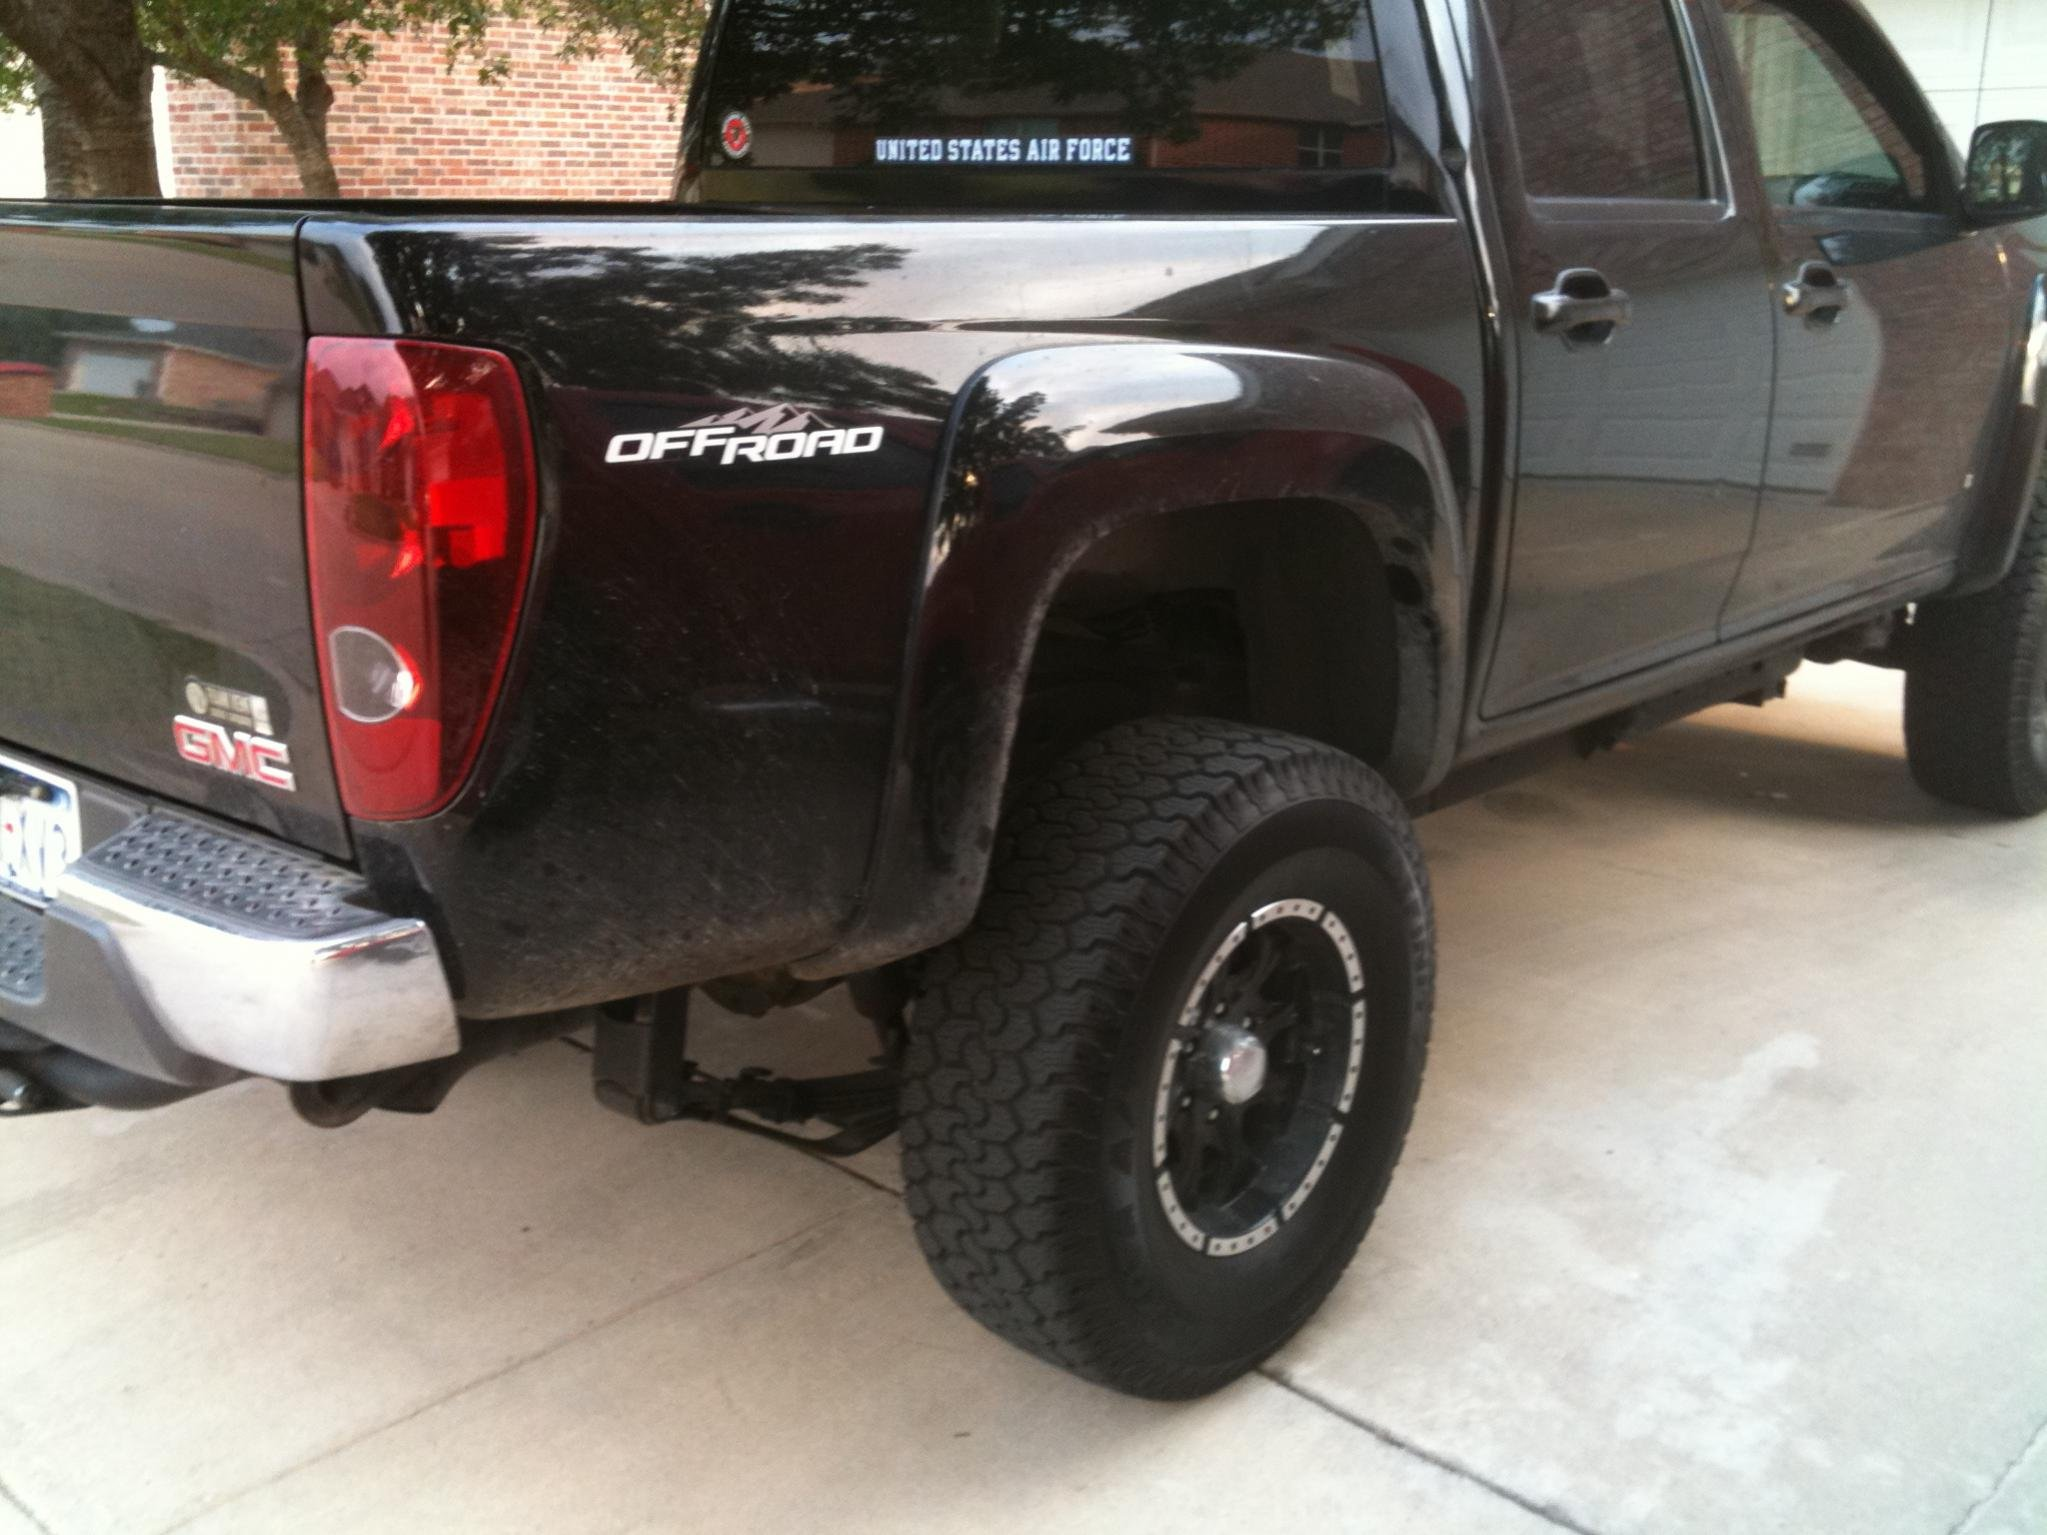 Mud Flaps For Lifted Trucks >> 2wd lifted, pics. and info. - Page 12 - Chevrolet Colorado & GMC Canyon Forum